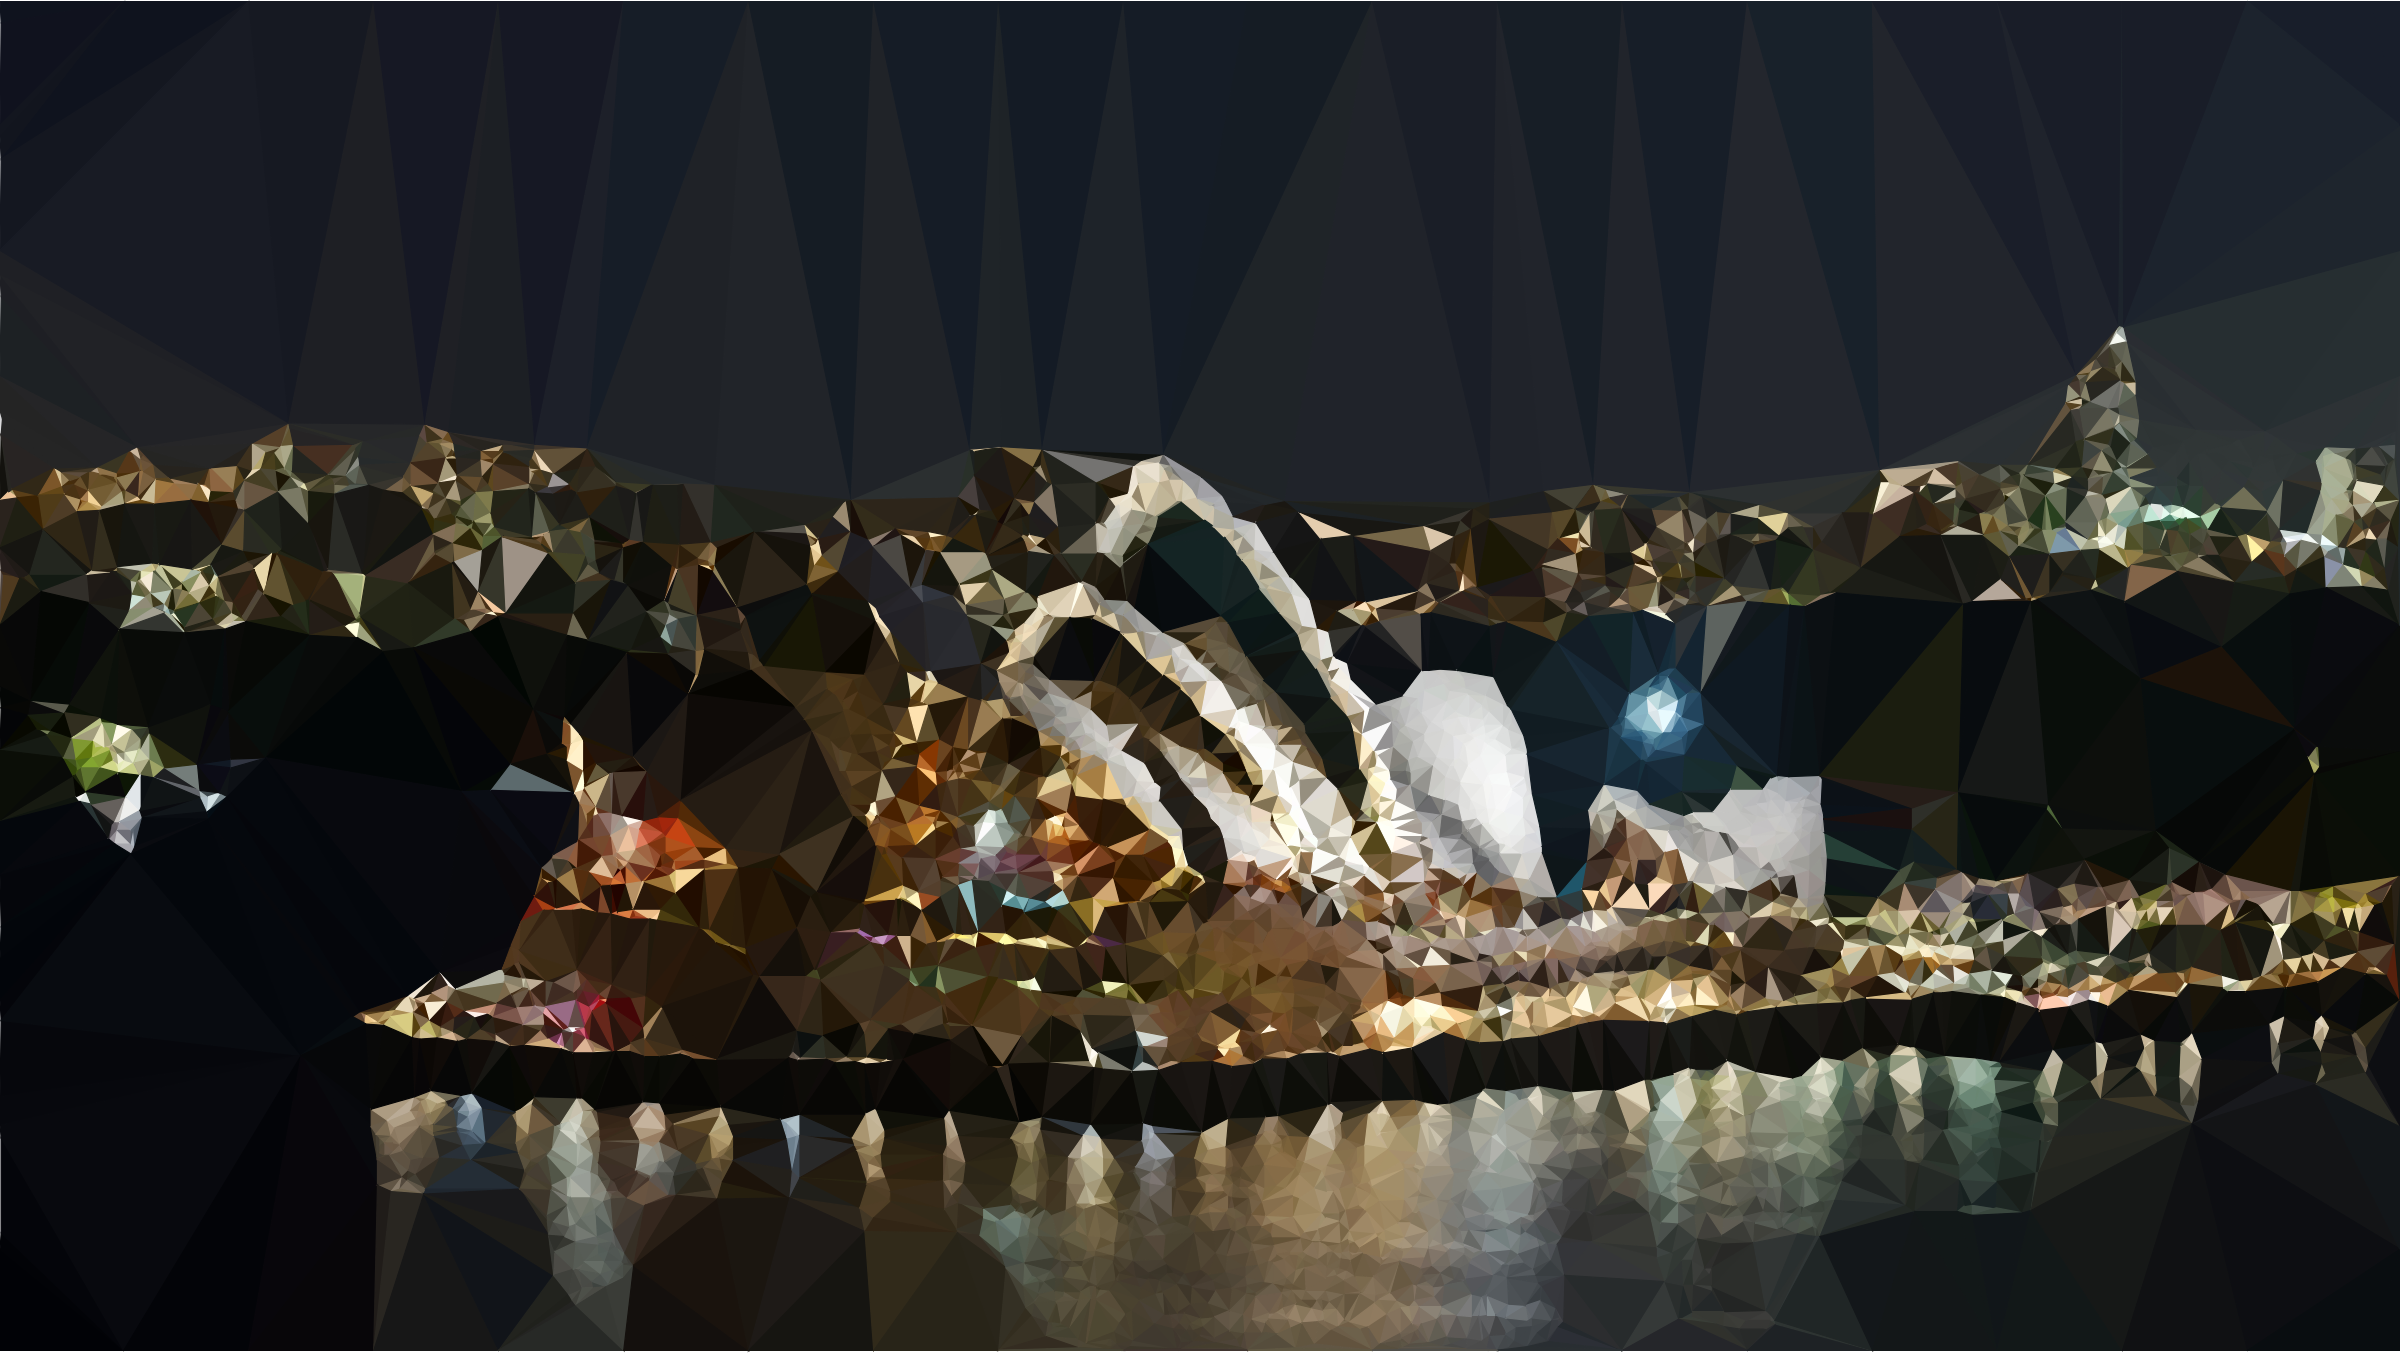 Low Poly Sydney Opera House Night Scene by GDJ